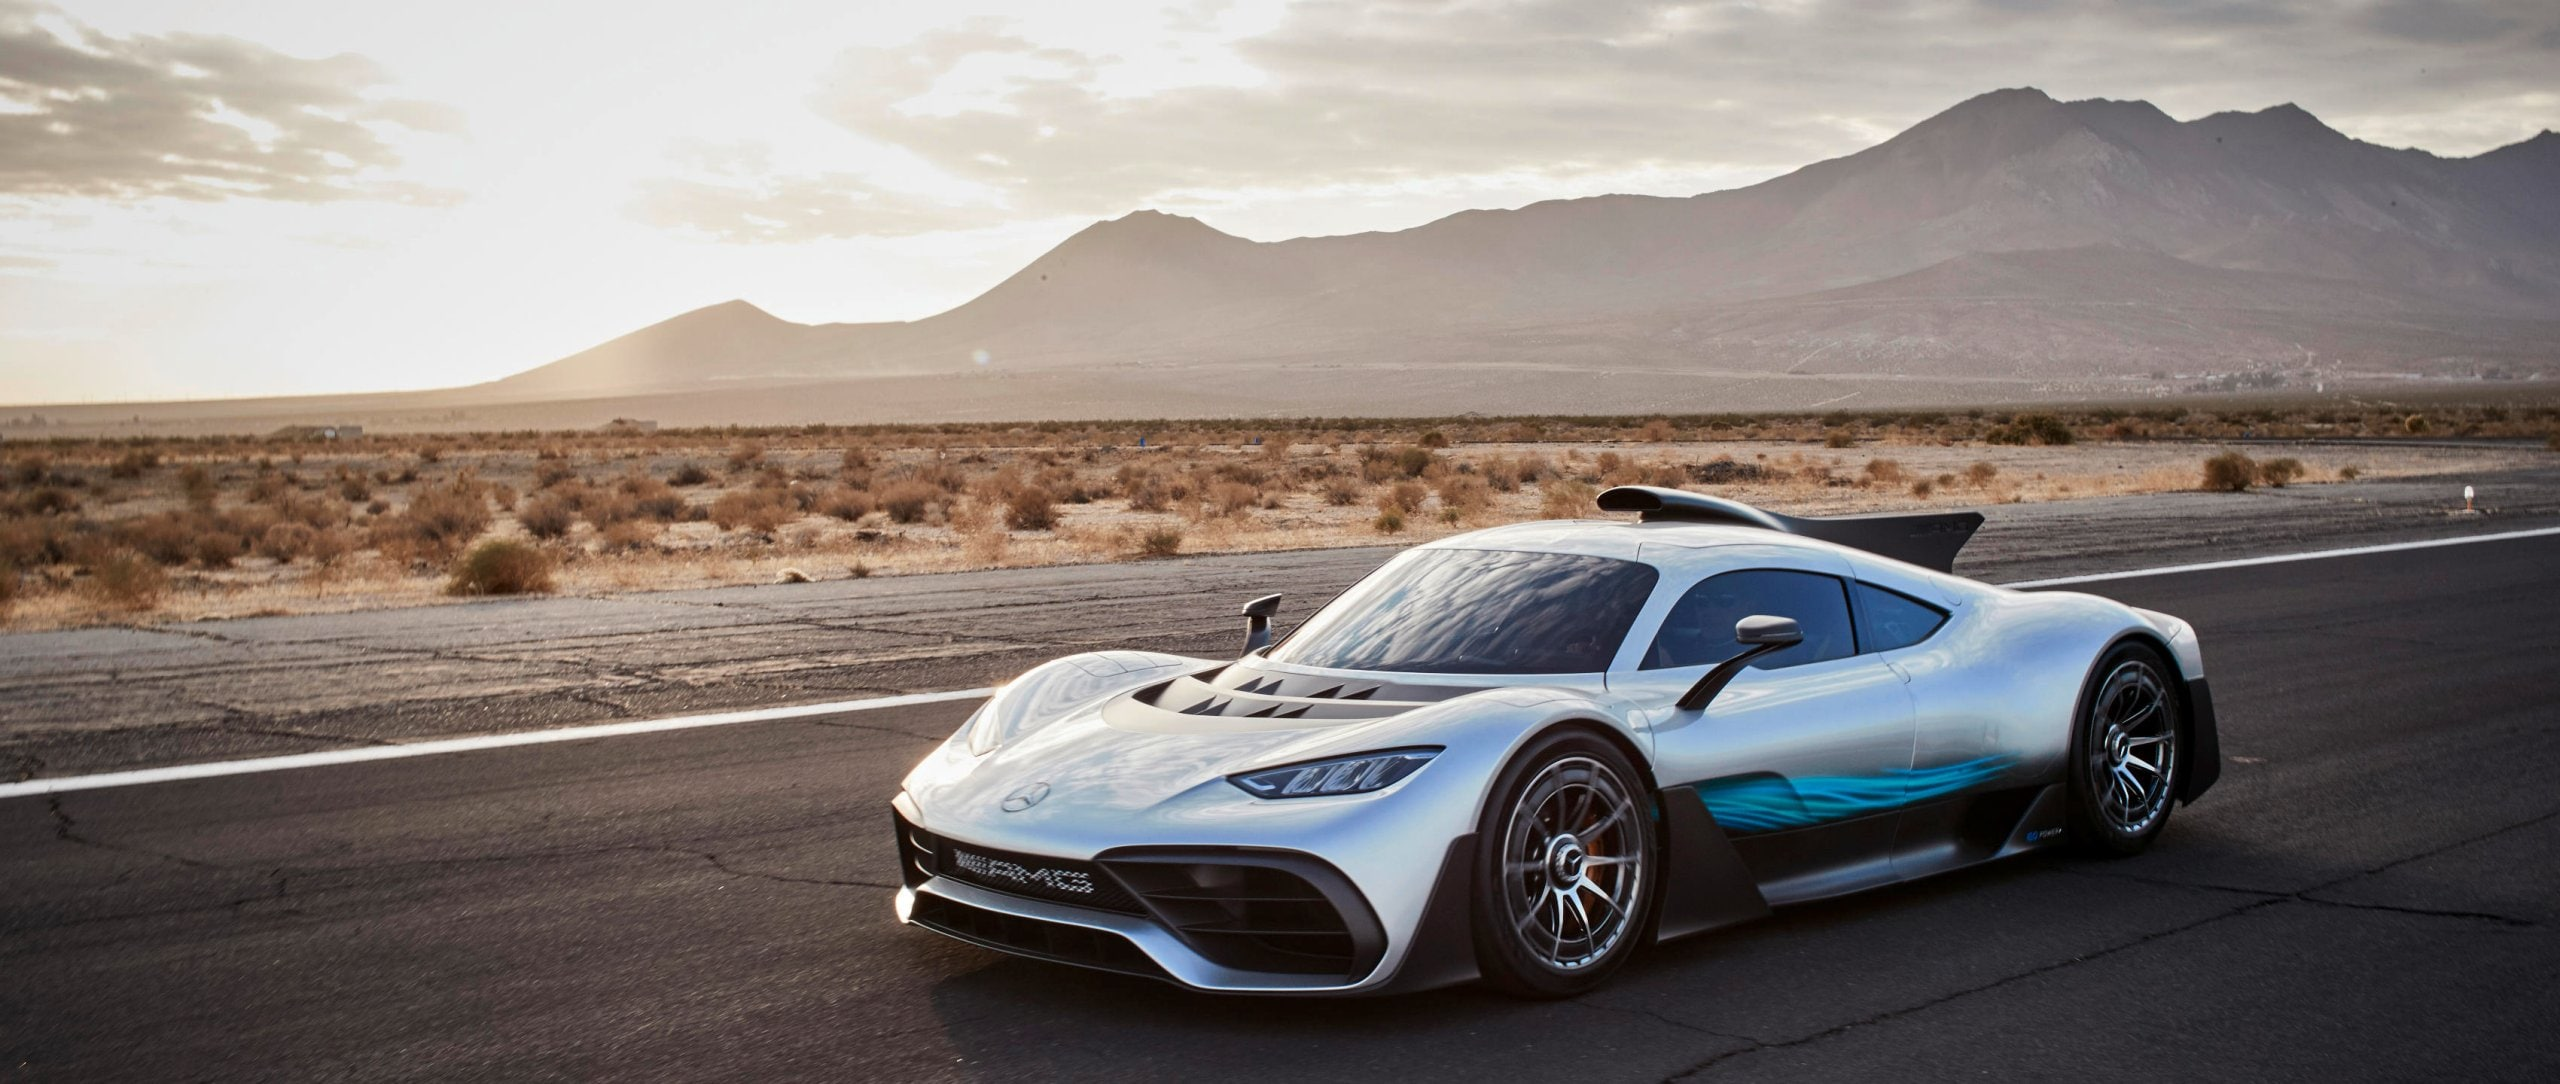 Mercedes-AMG Project ONE Wallpaper gallery.